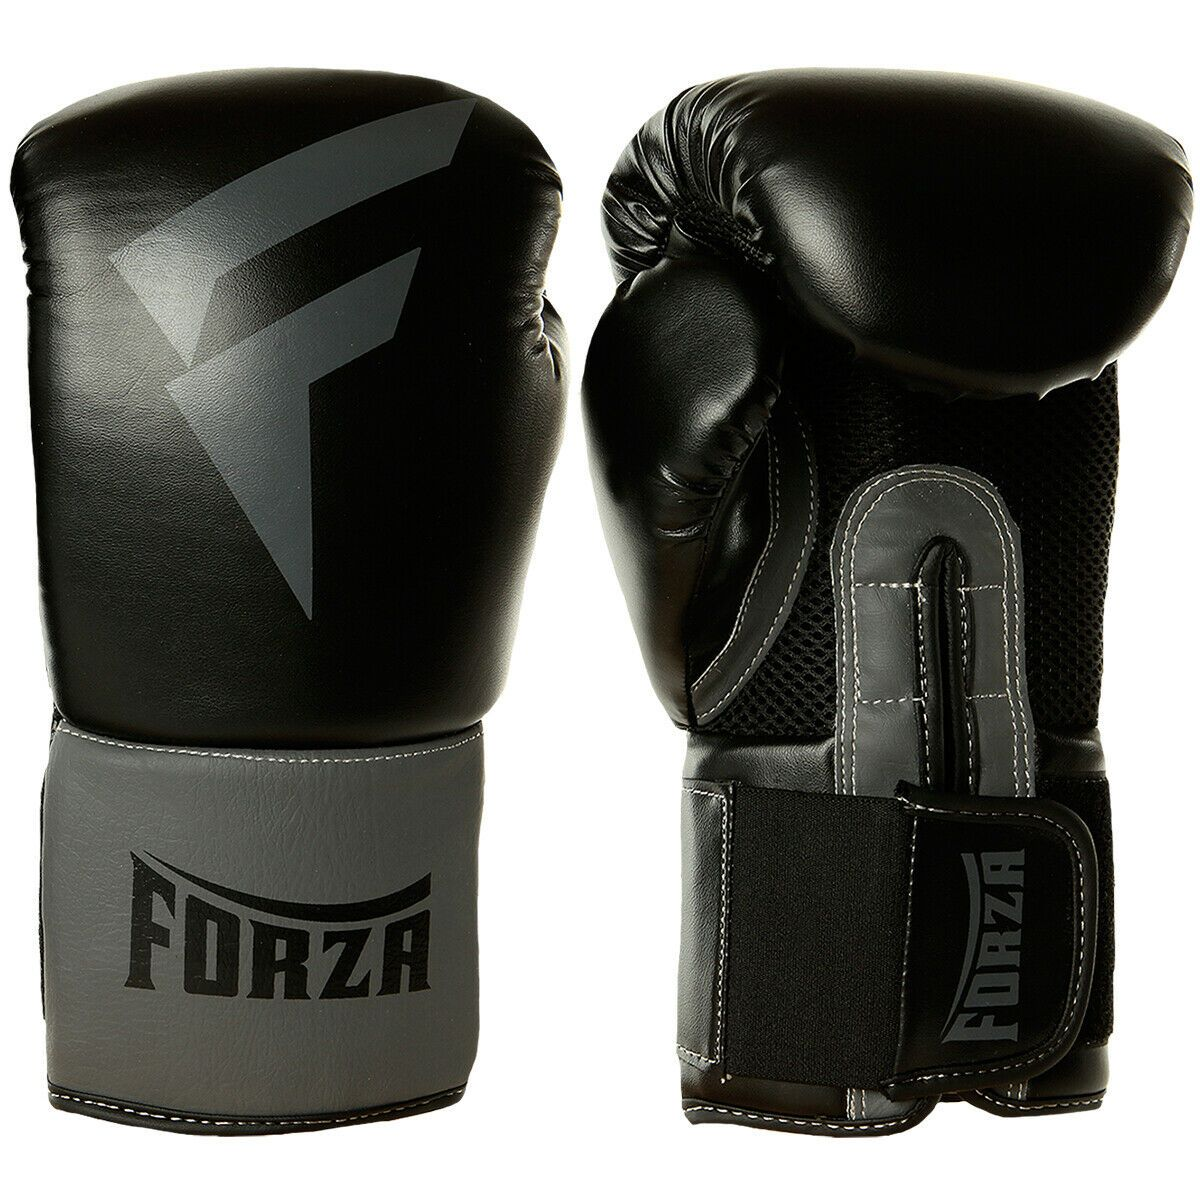 Forza Sports Vinyl Boxing Training Gloves Black Gray In 2020 Boxing Training Gloves Training Gloves Boxing Training